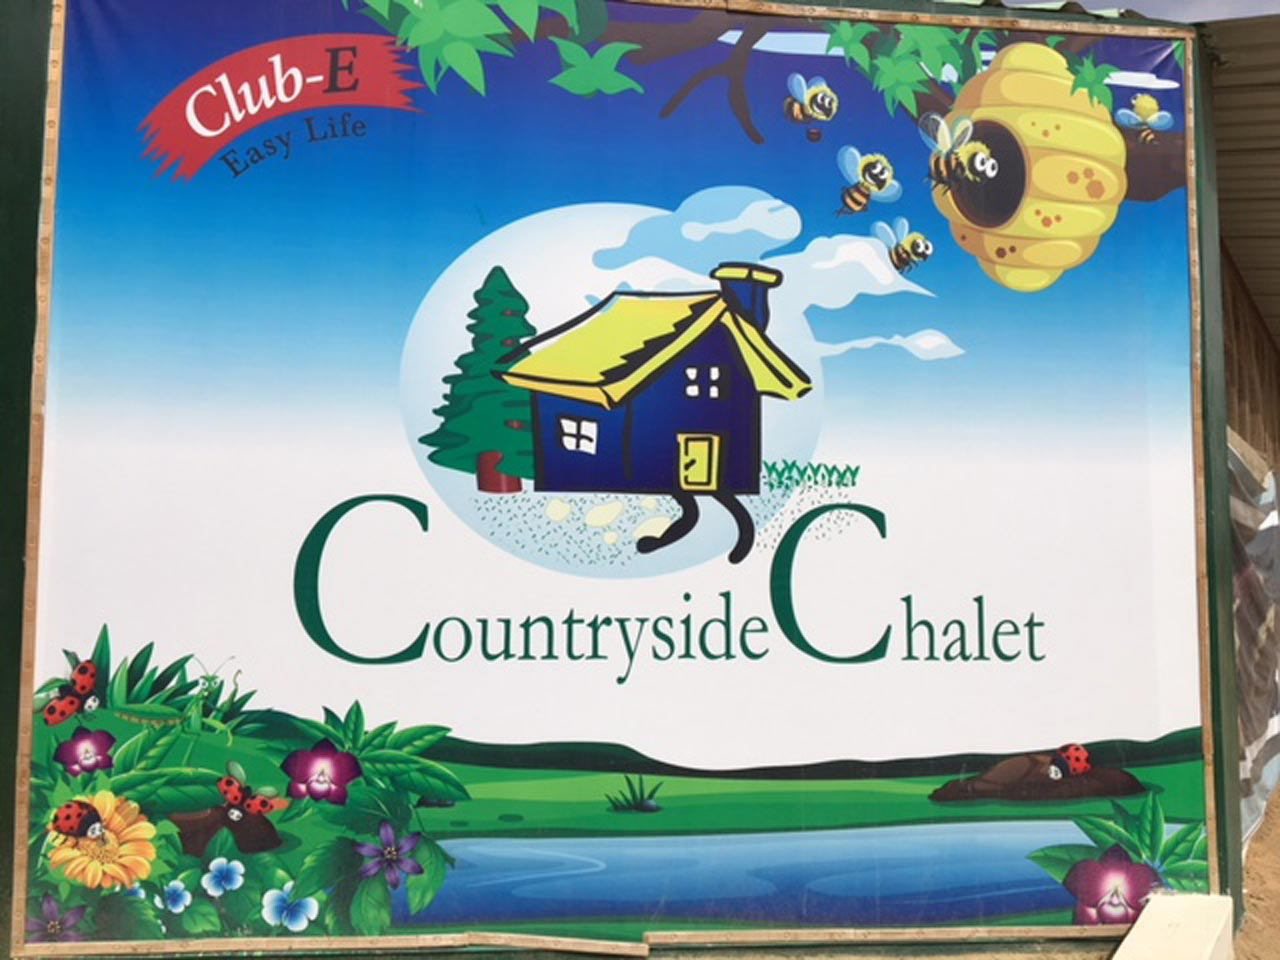 Countryside Chalet Poster at the Farm House